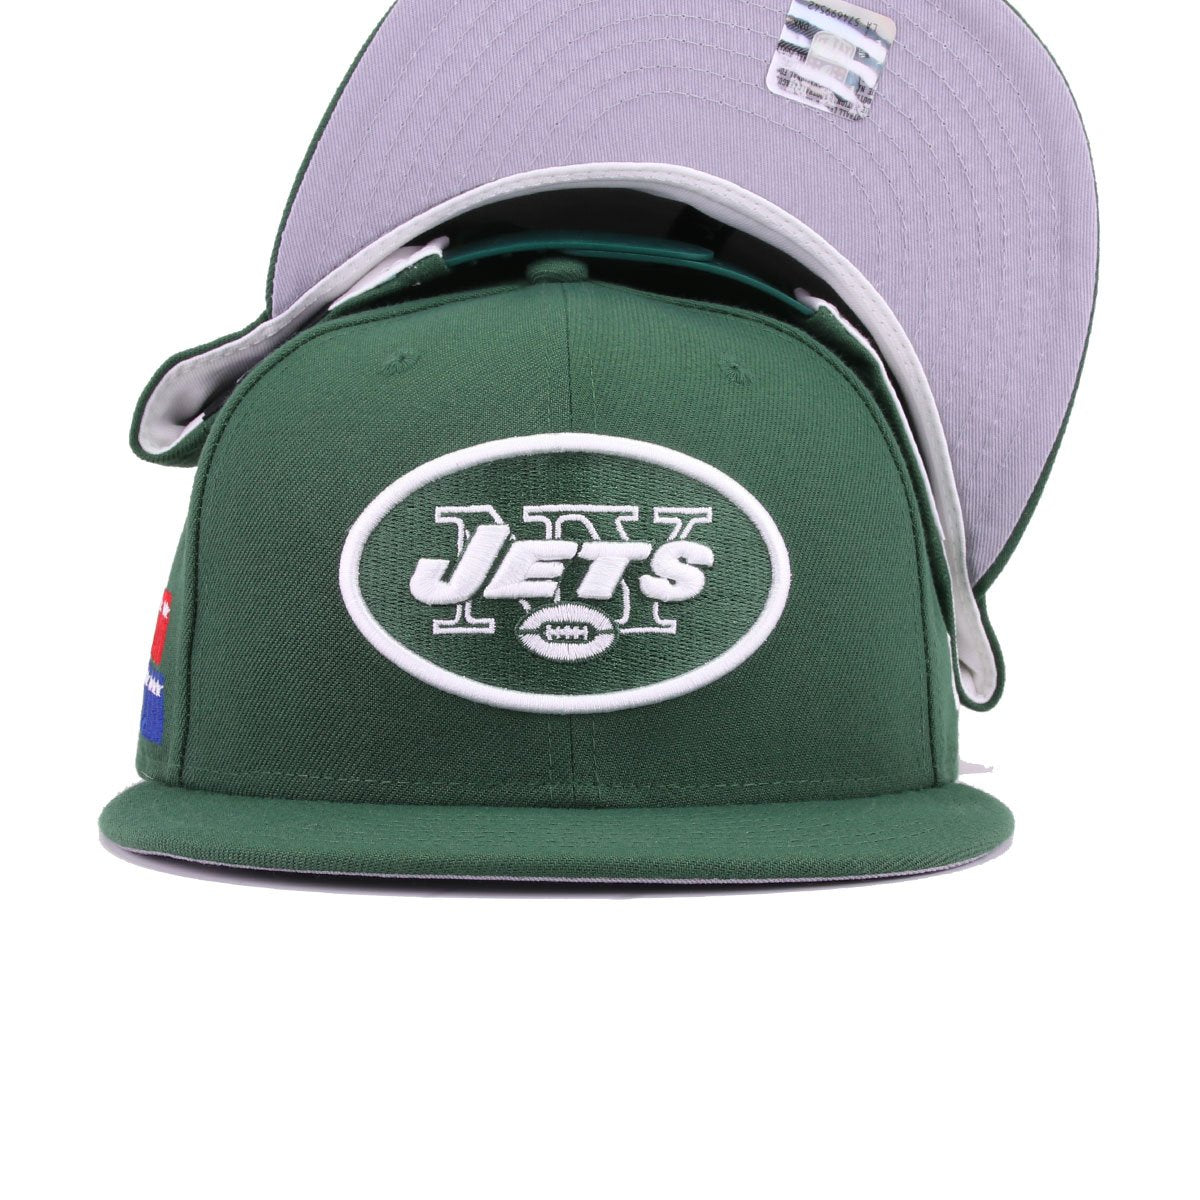 New York Jets Cilantro Green Super Bowl III New Era 9Fifty Snapback